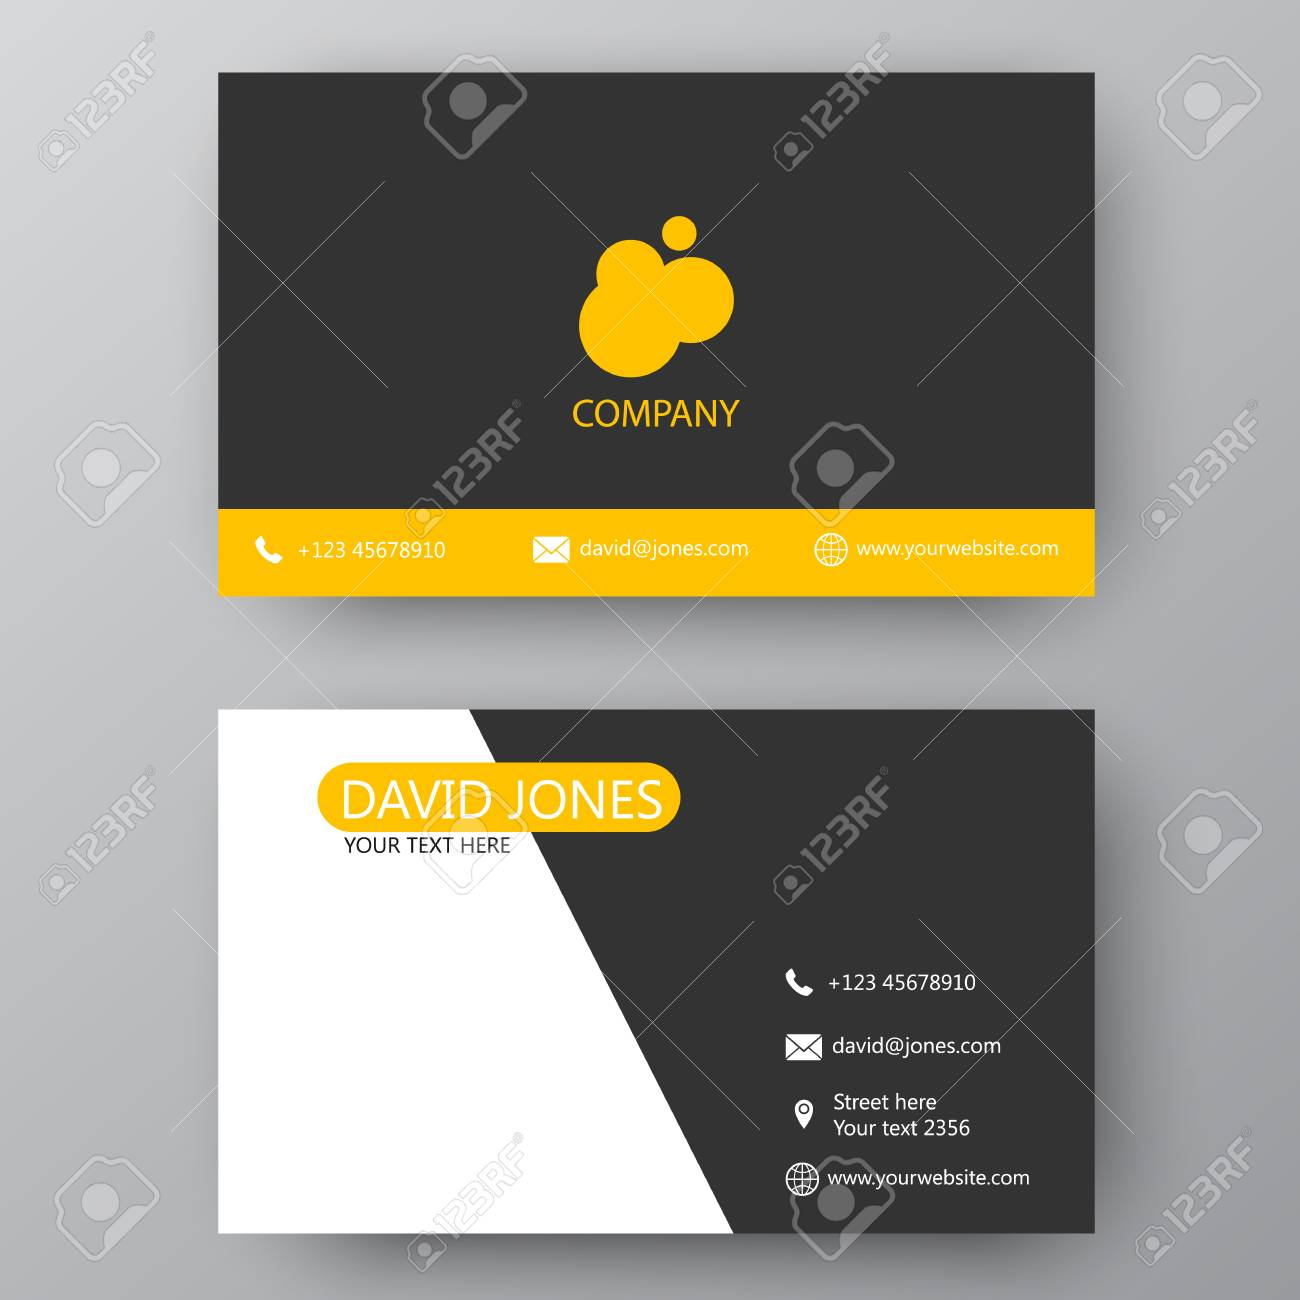 Vector business card template visiting card for business and banco de imagens vector business card template visiting card for business and personal use modern presentation card with company logo reheart Choice Image